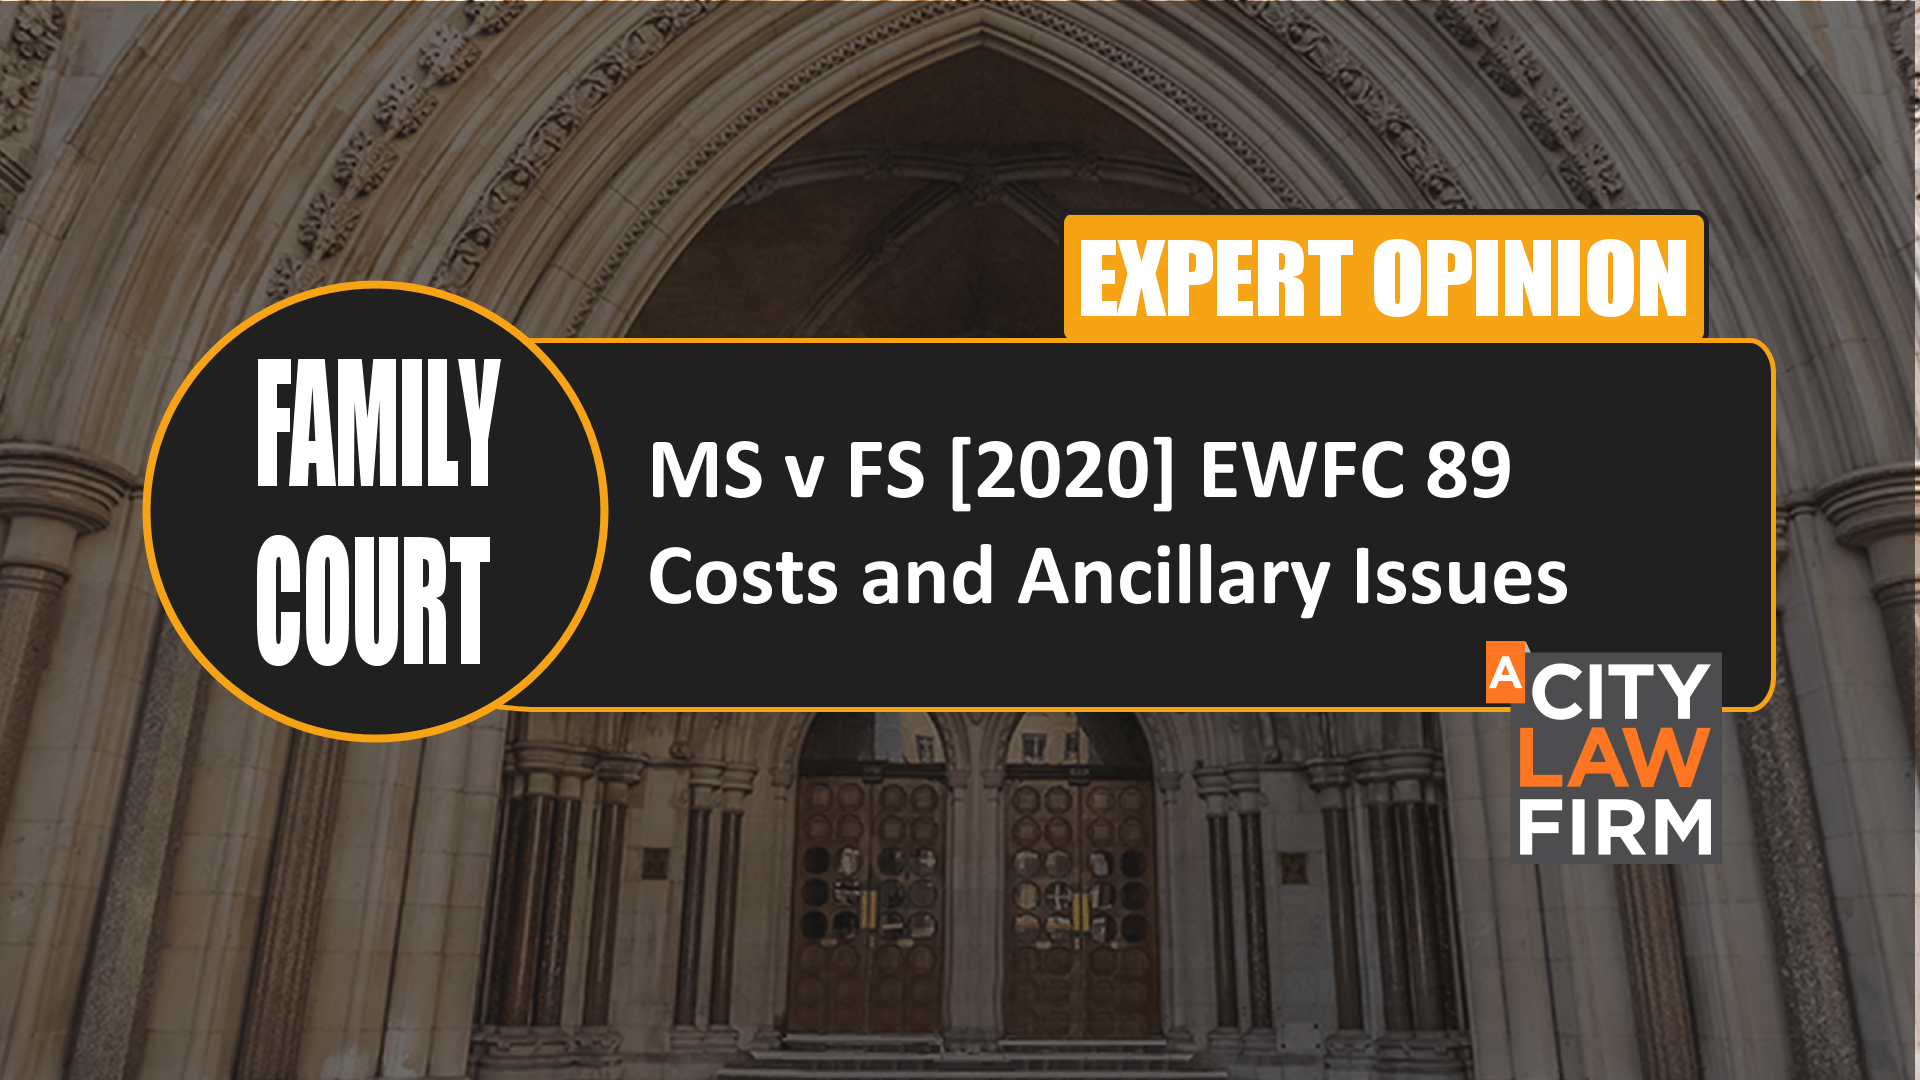 MS v FS [2020] EWFC 89 – Costs and Ancillary Issues